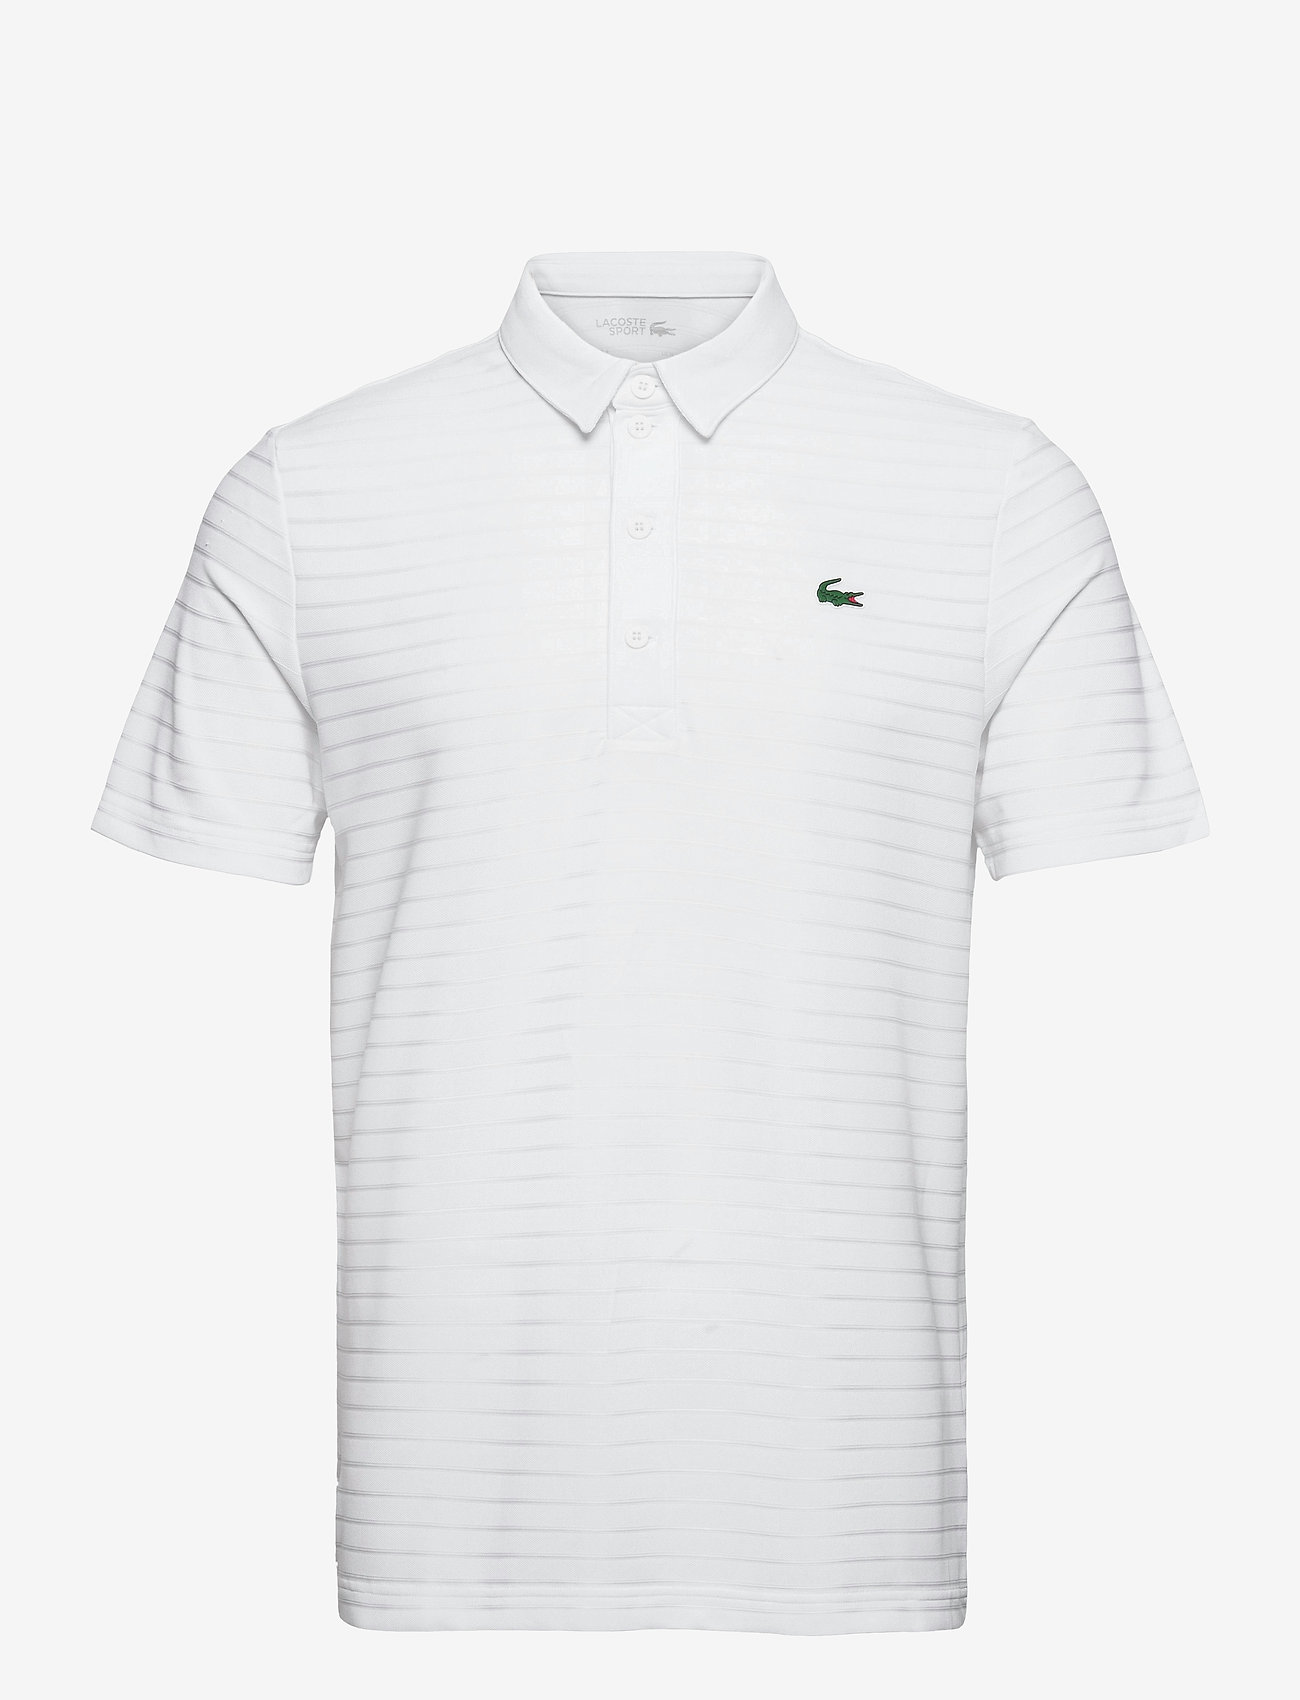 Lacoste - Men s S/S polo - kortærmede - white - 0